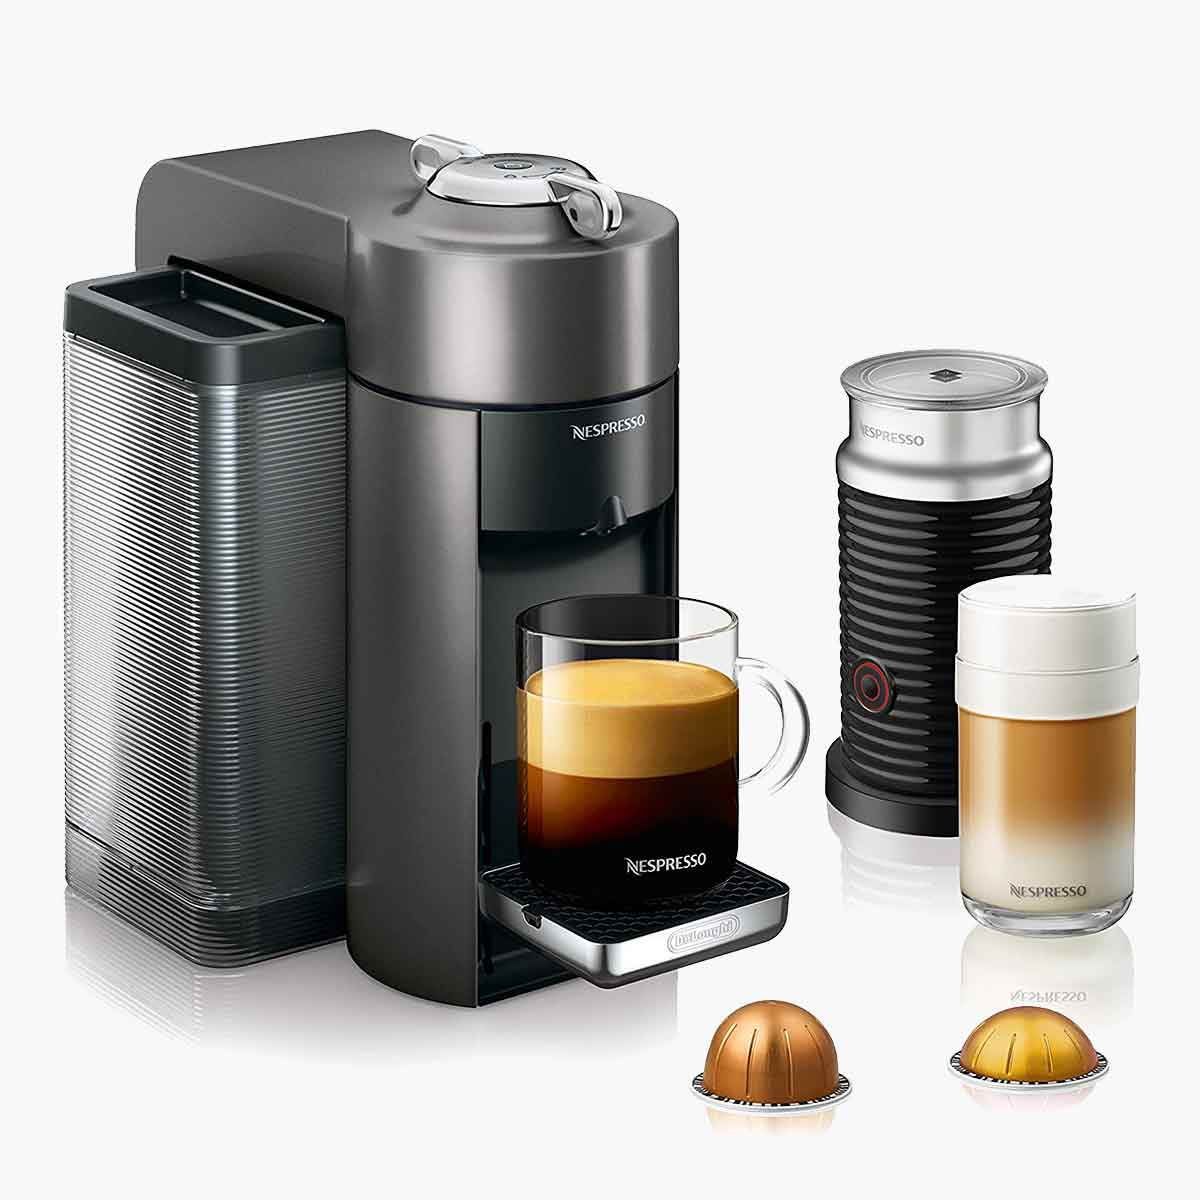 A Nespresso De'Longhi machine with two pods, and a brewed cup of espresso.